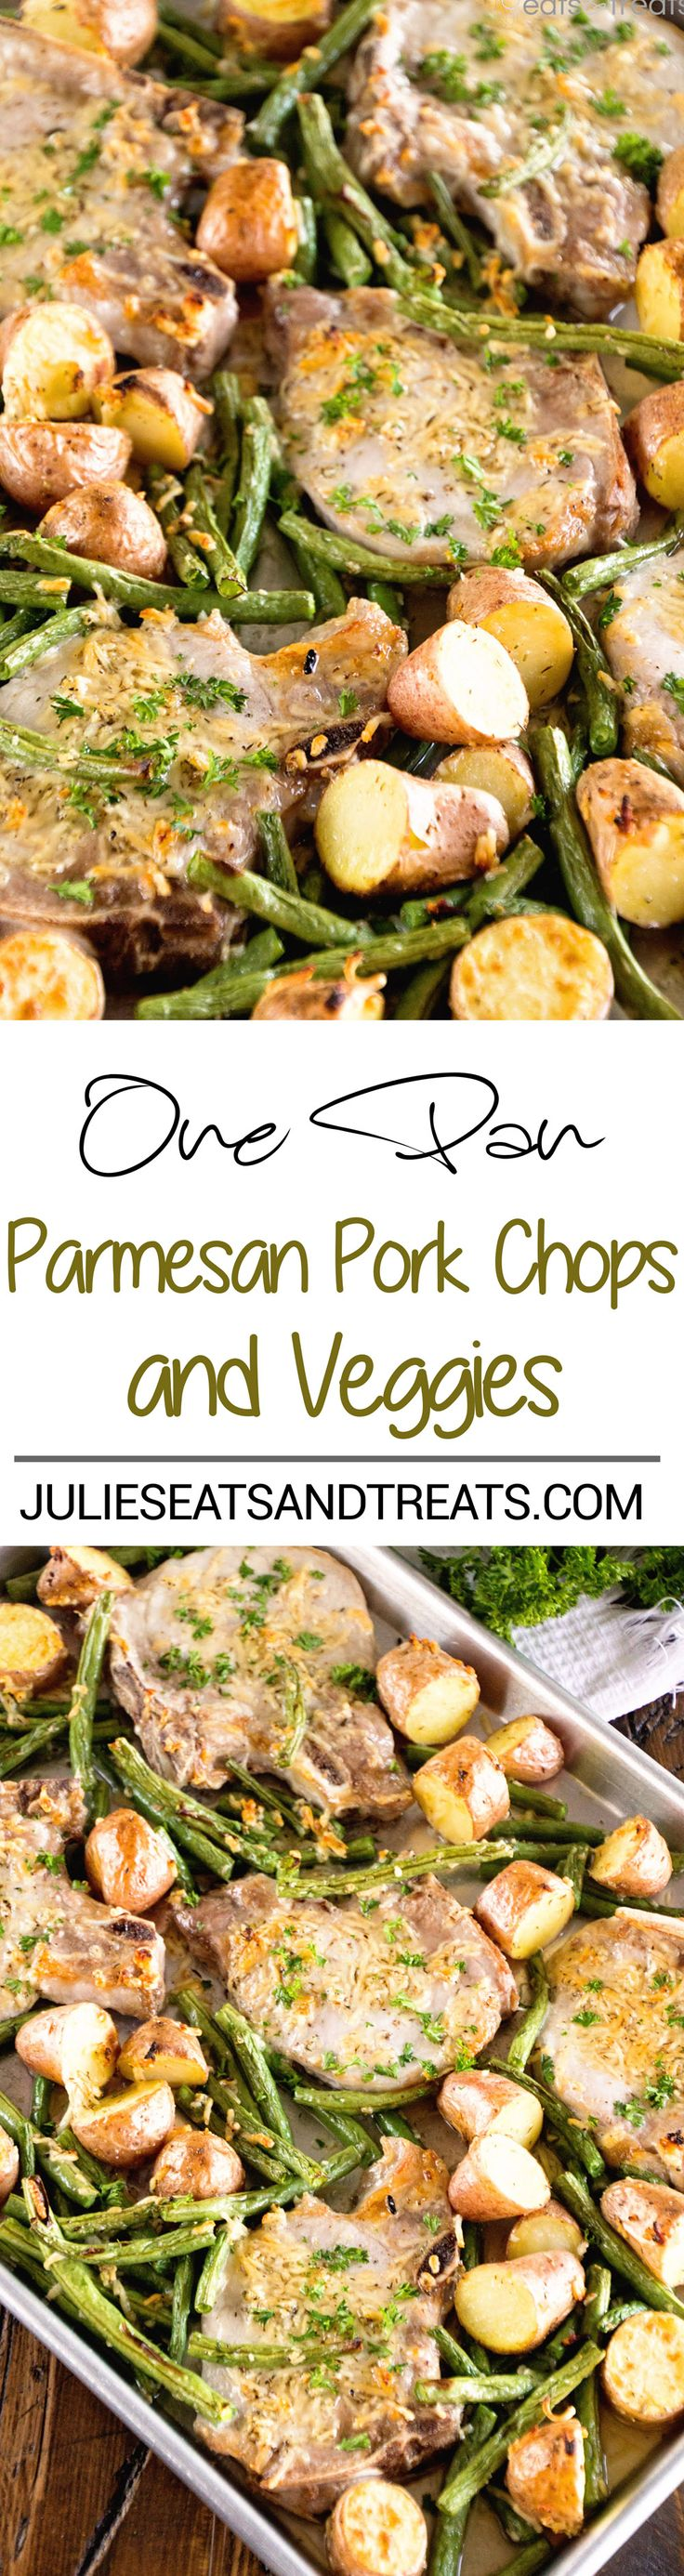 One Pan Parmesan Pork Chops and Veggies Recipe ~ Juicy Pork Chops Baked in the Oven with Potatoes and Veggies Seasoned with Garlic, Thyme and Parmesan! Quick, Healthy, Light Dinner ready in 30 Minutes! on MyRecipeMagic.com